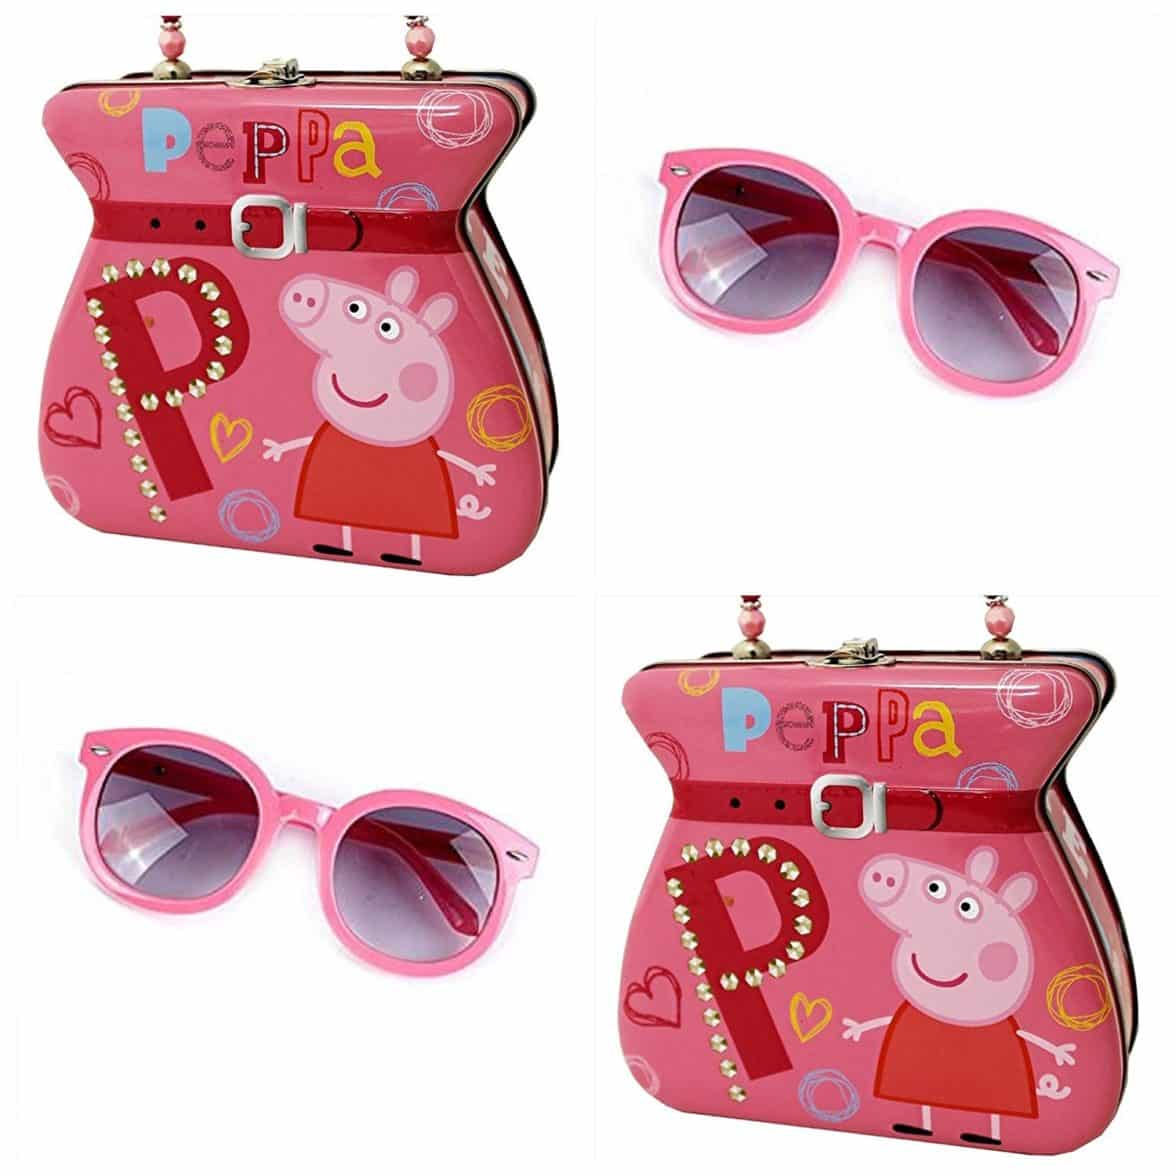 Exclusive Peppa Pig Tin Storage Purse 2 Piece Set